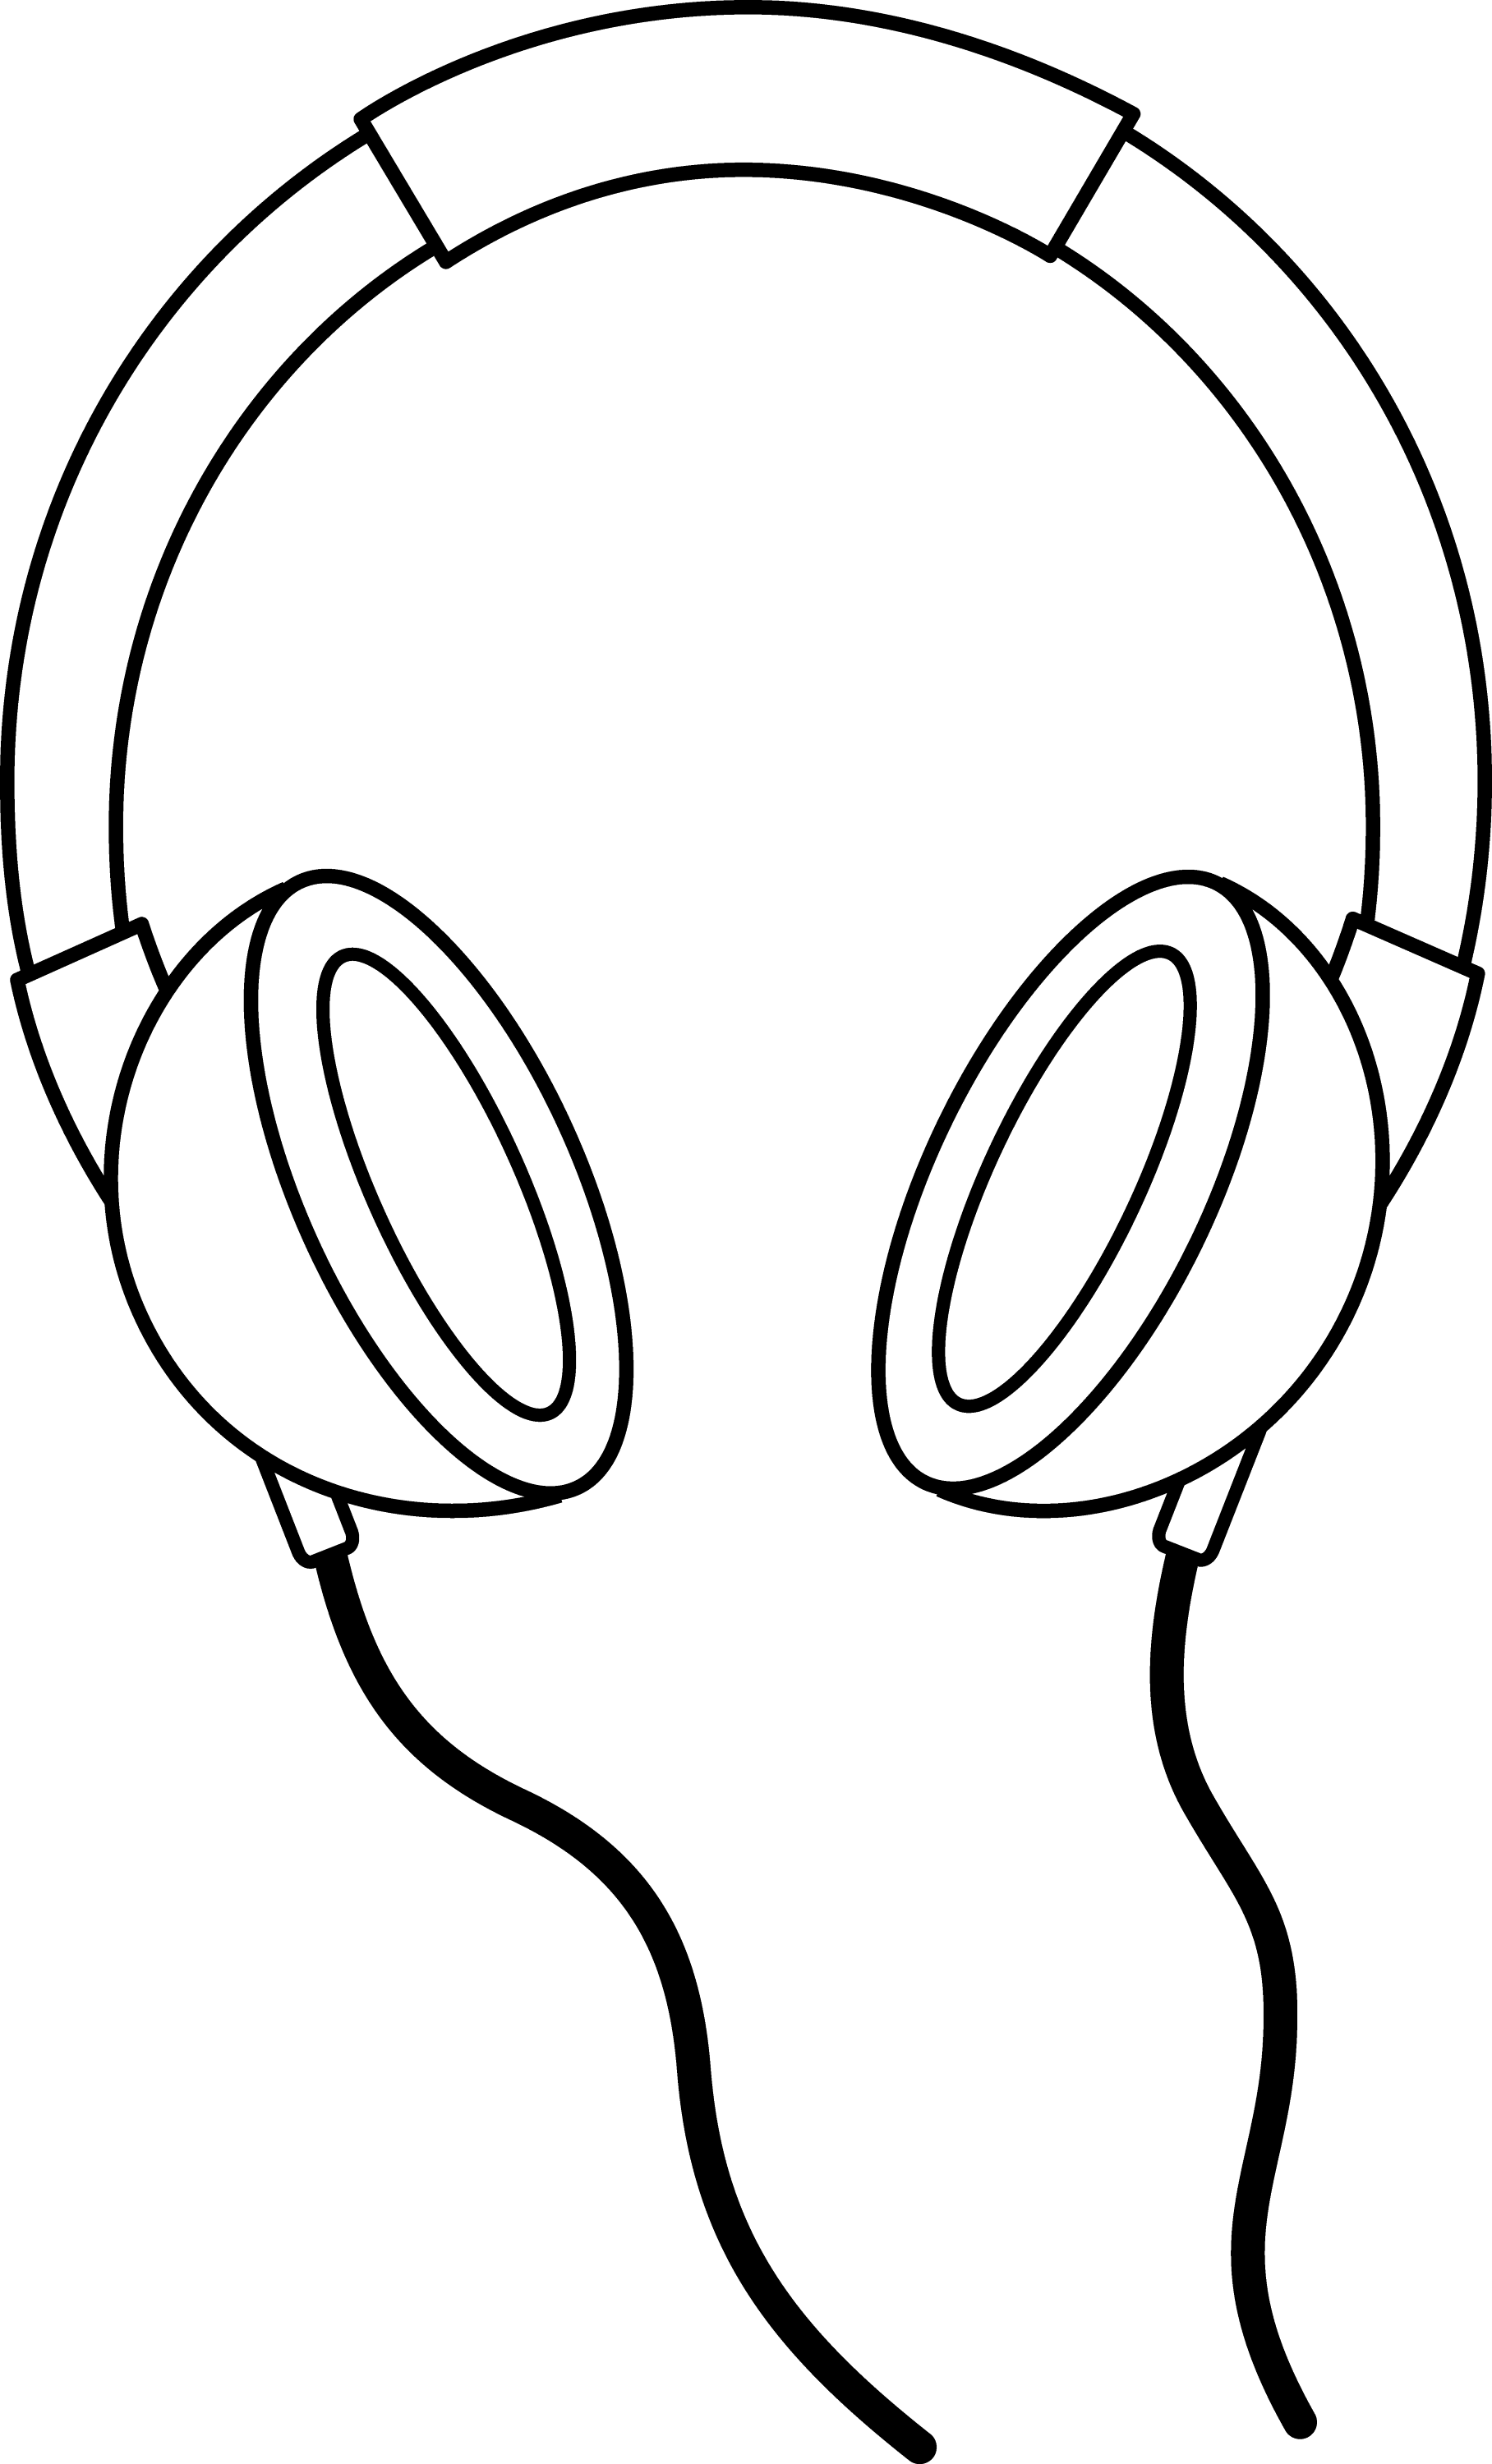 Line Art Headphones : Headphones line art free clip